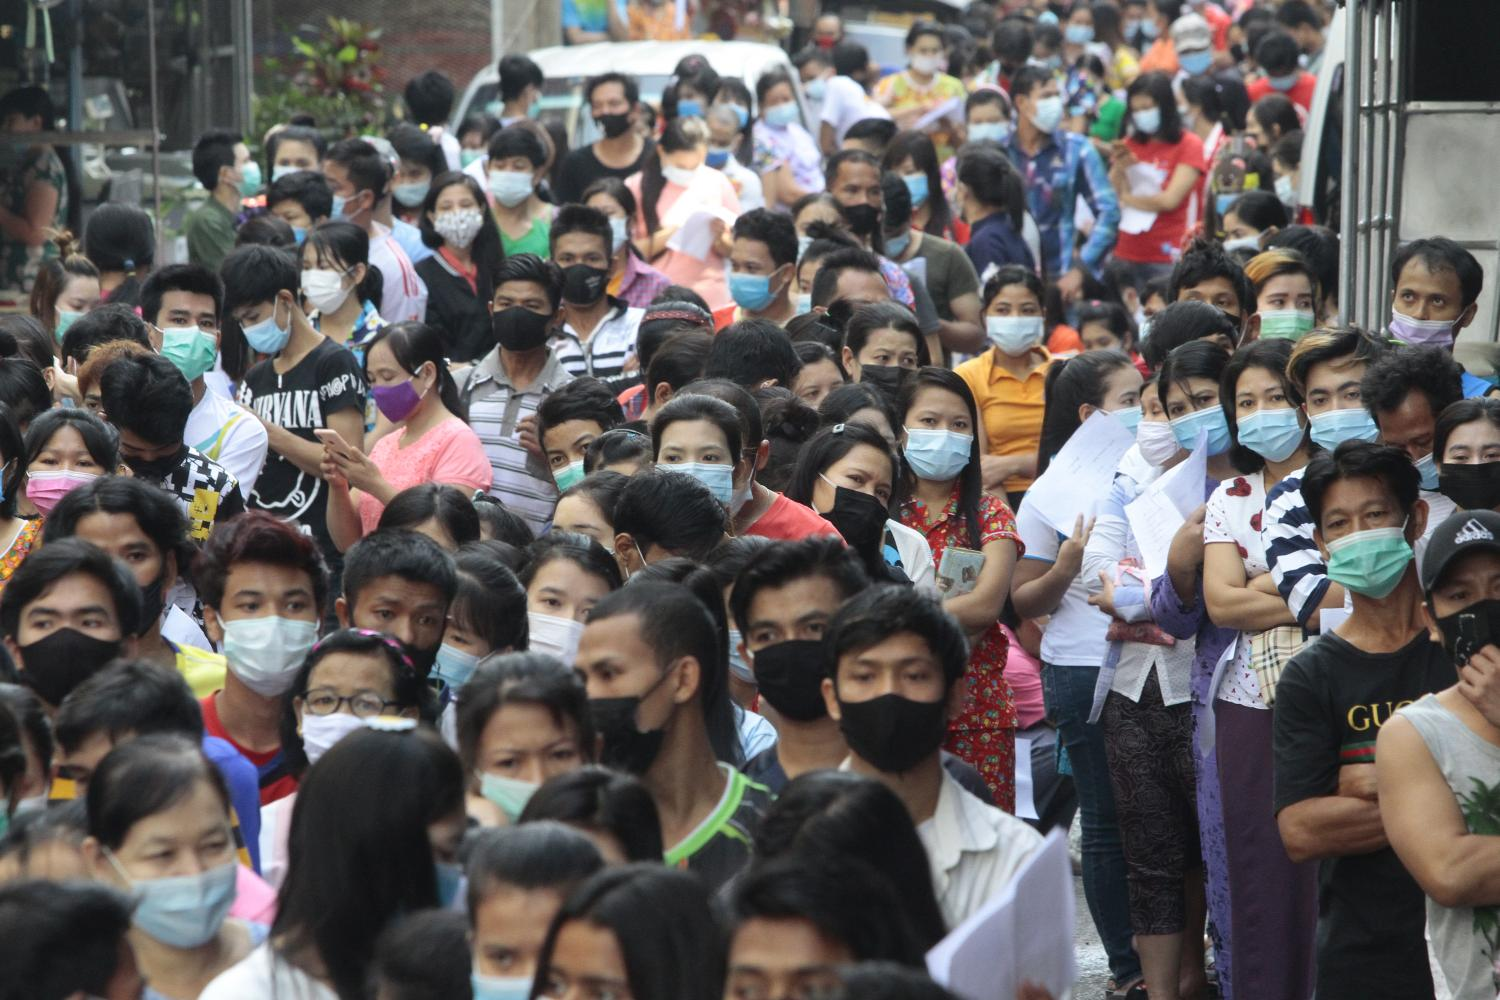 Thousands of migrant workers wait for Covid-19 testing in the wake of a Covid outbreak in Samut Sakhon last December.(Photo by Arnun Chonmahatrakool)